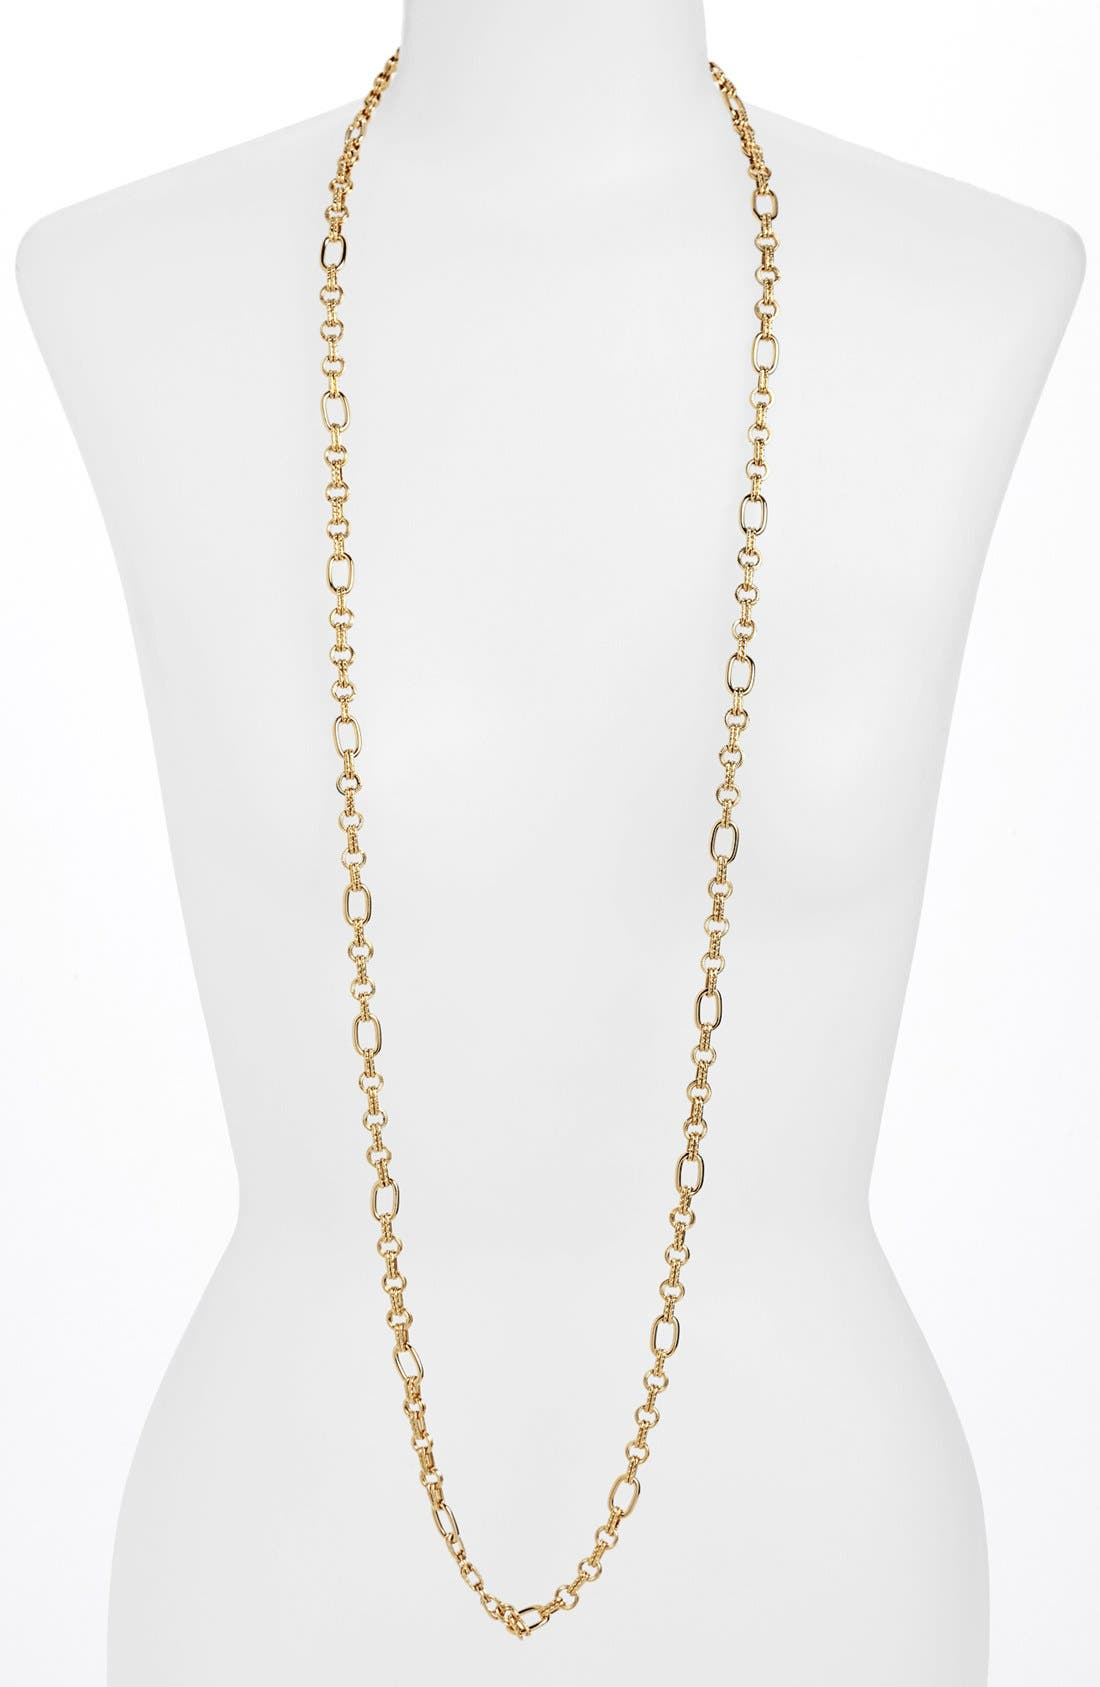 Alternate Image 1 Selected - Nordstrom Long Textured Link Necklace